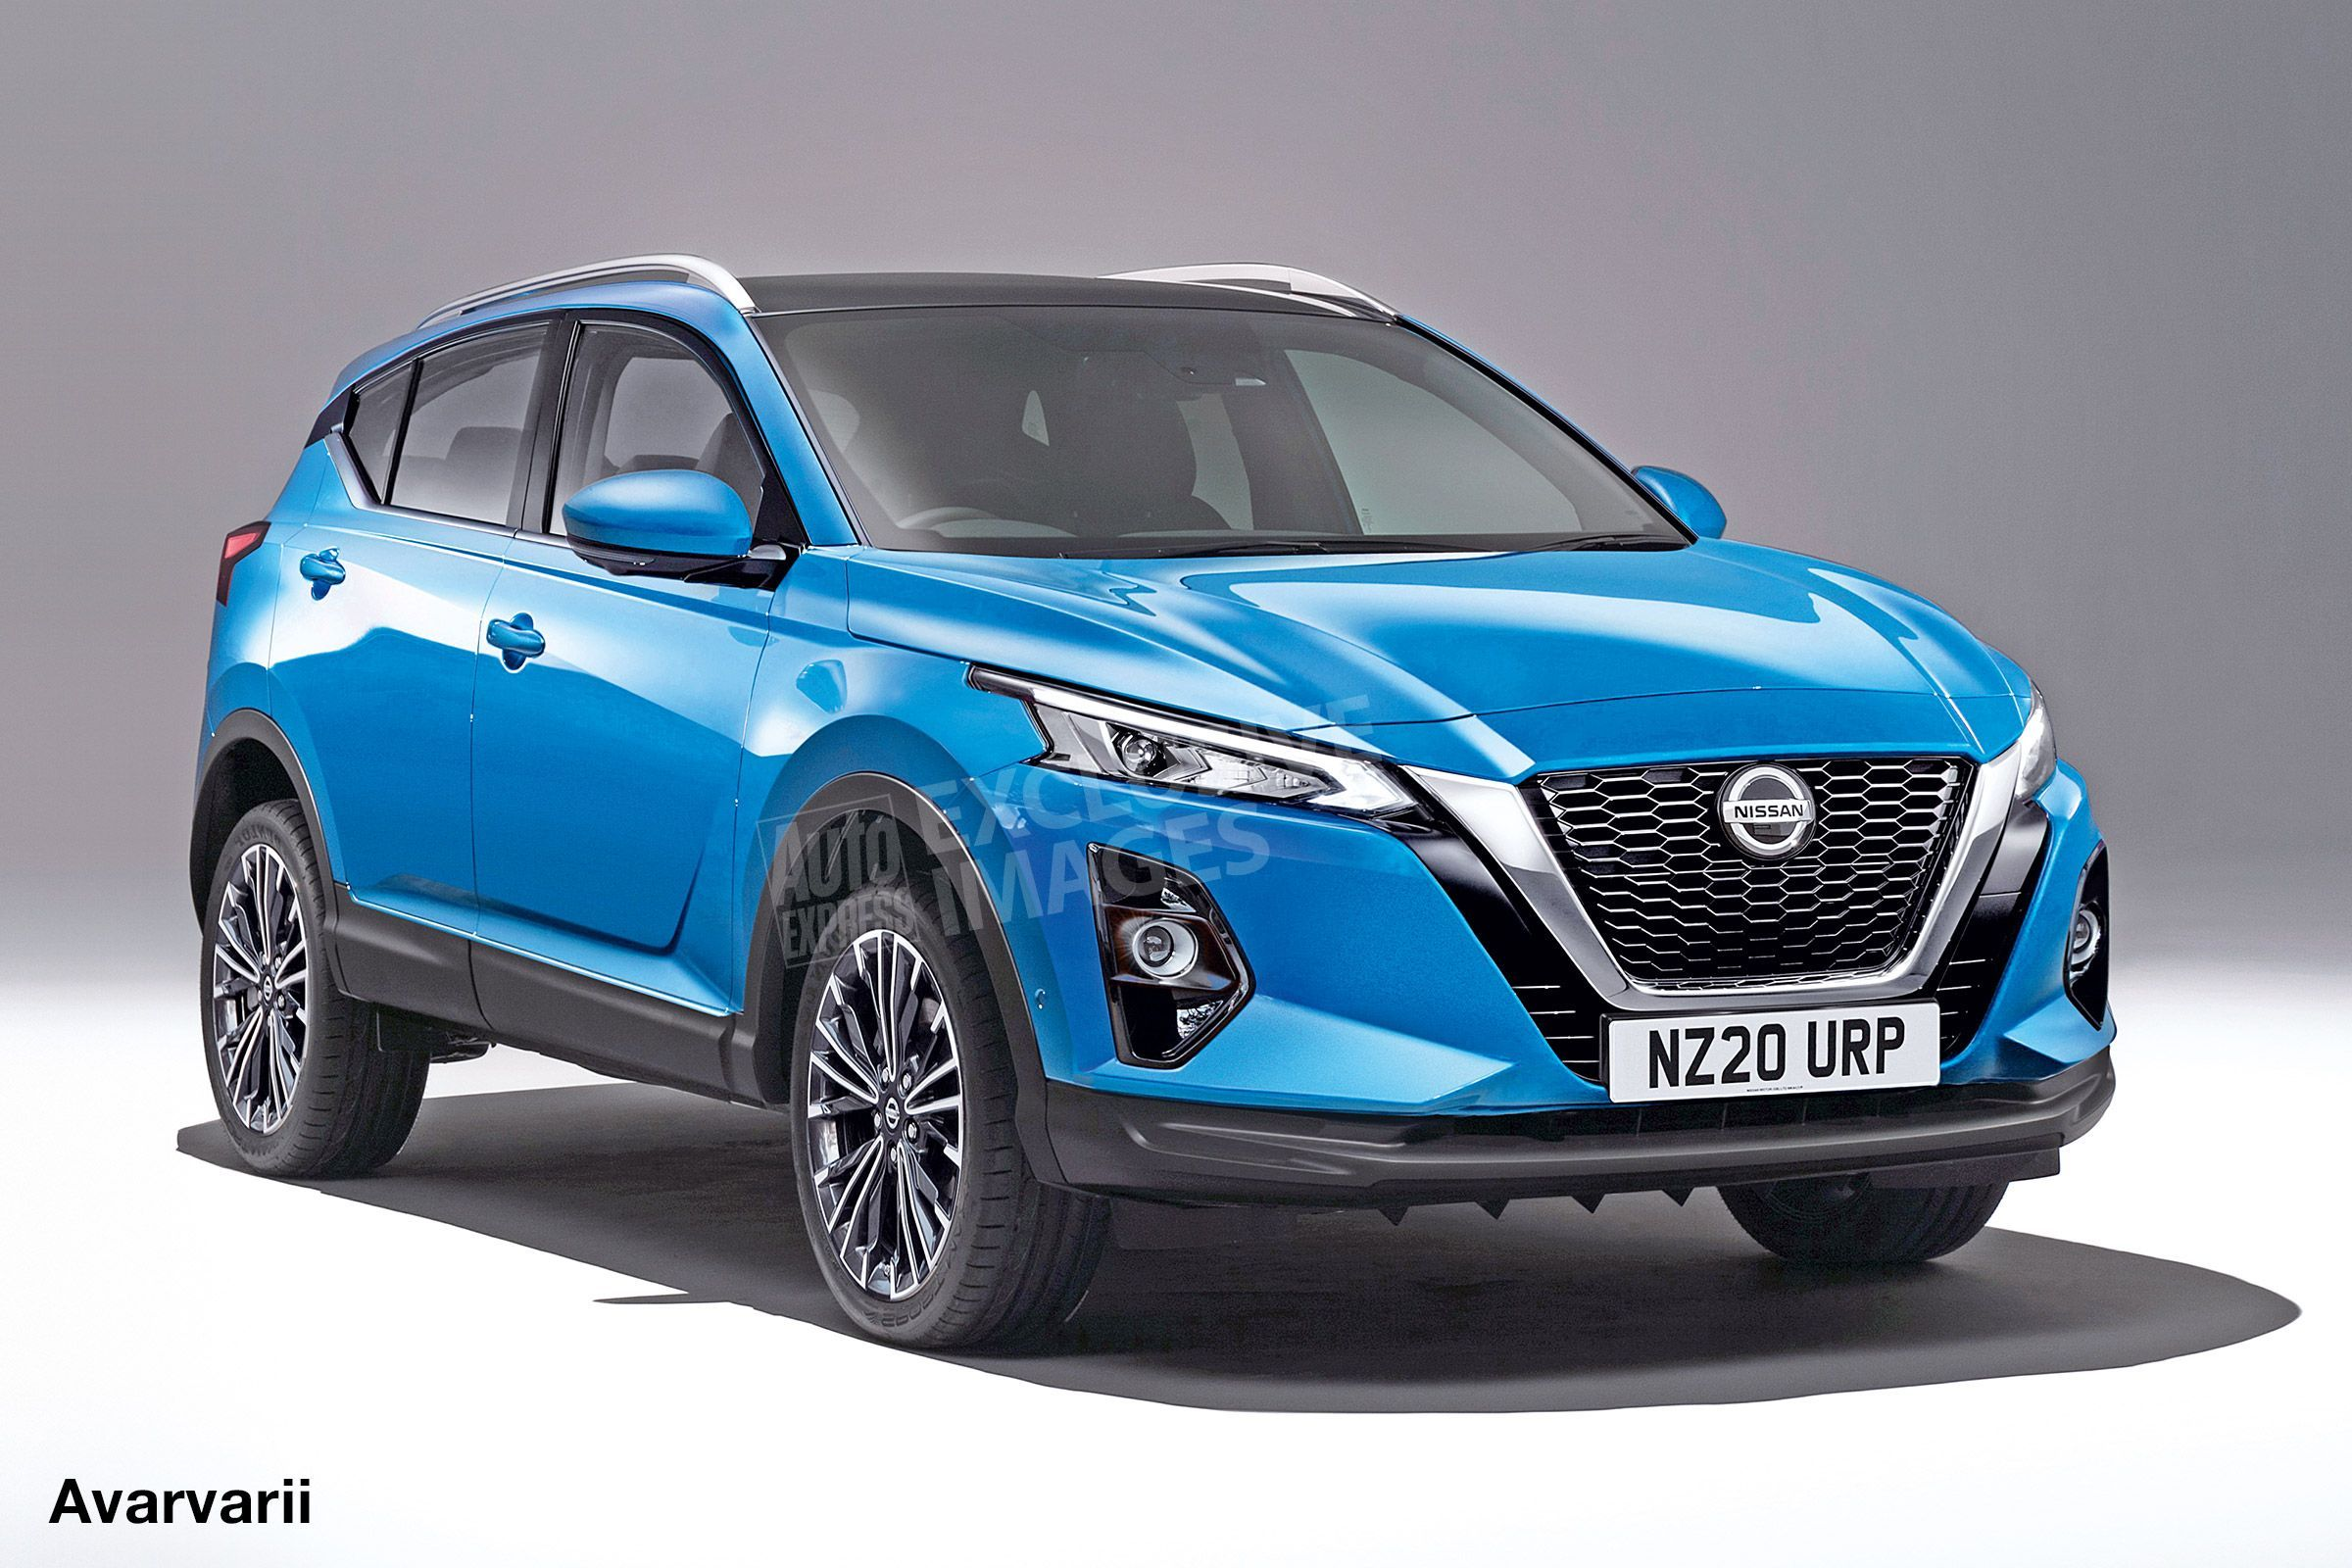 2020 Nissan Qashqai 2018 Price (With images) Nissan